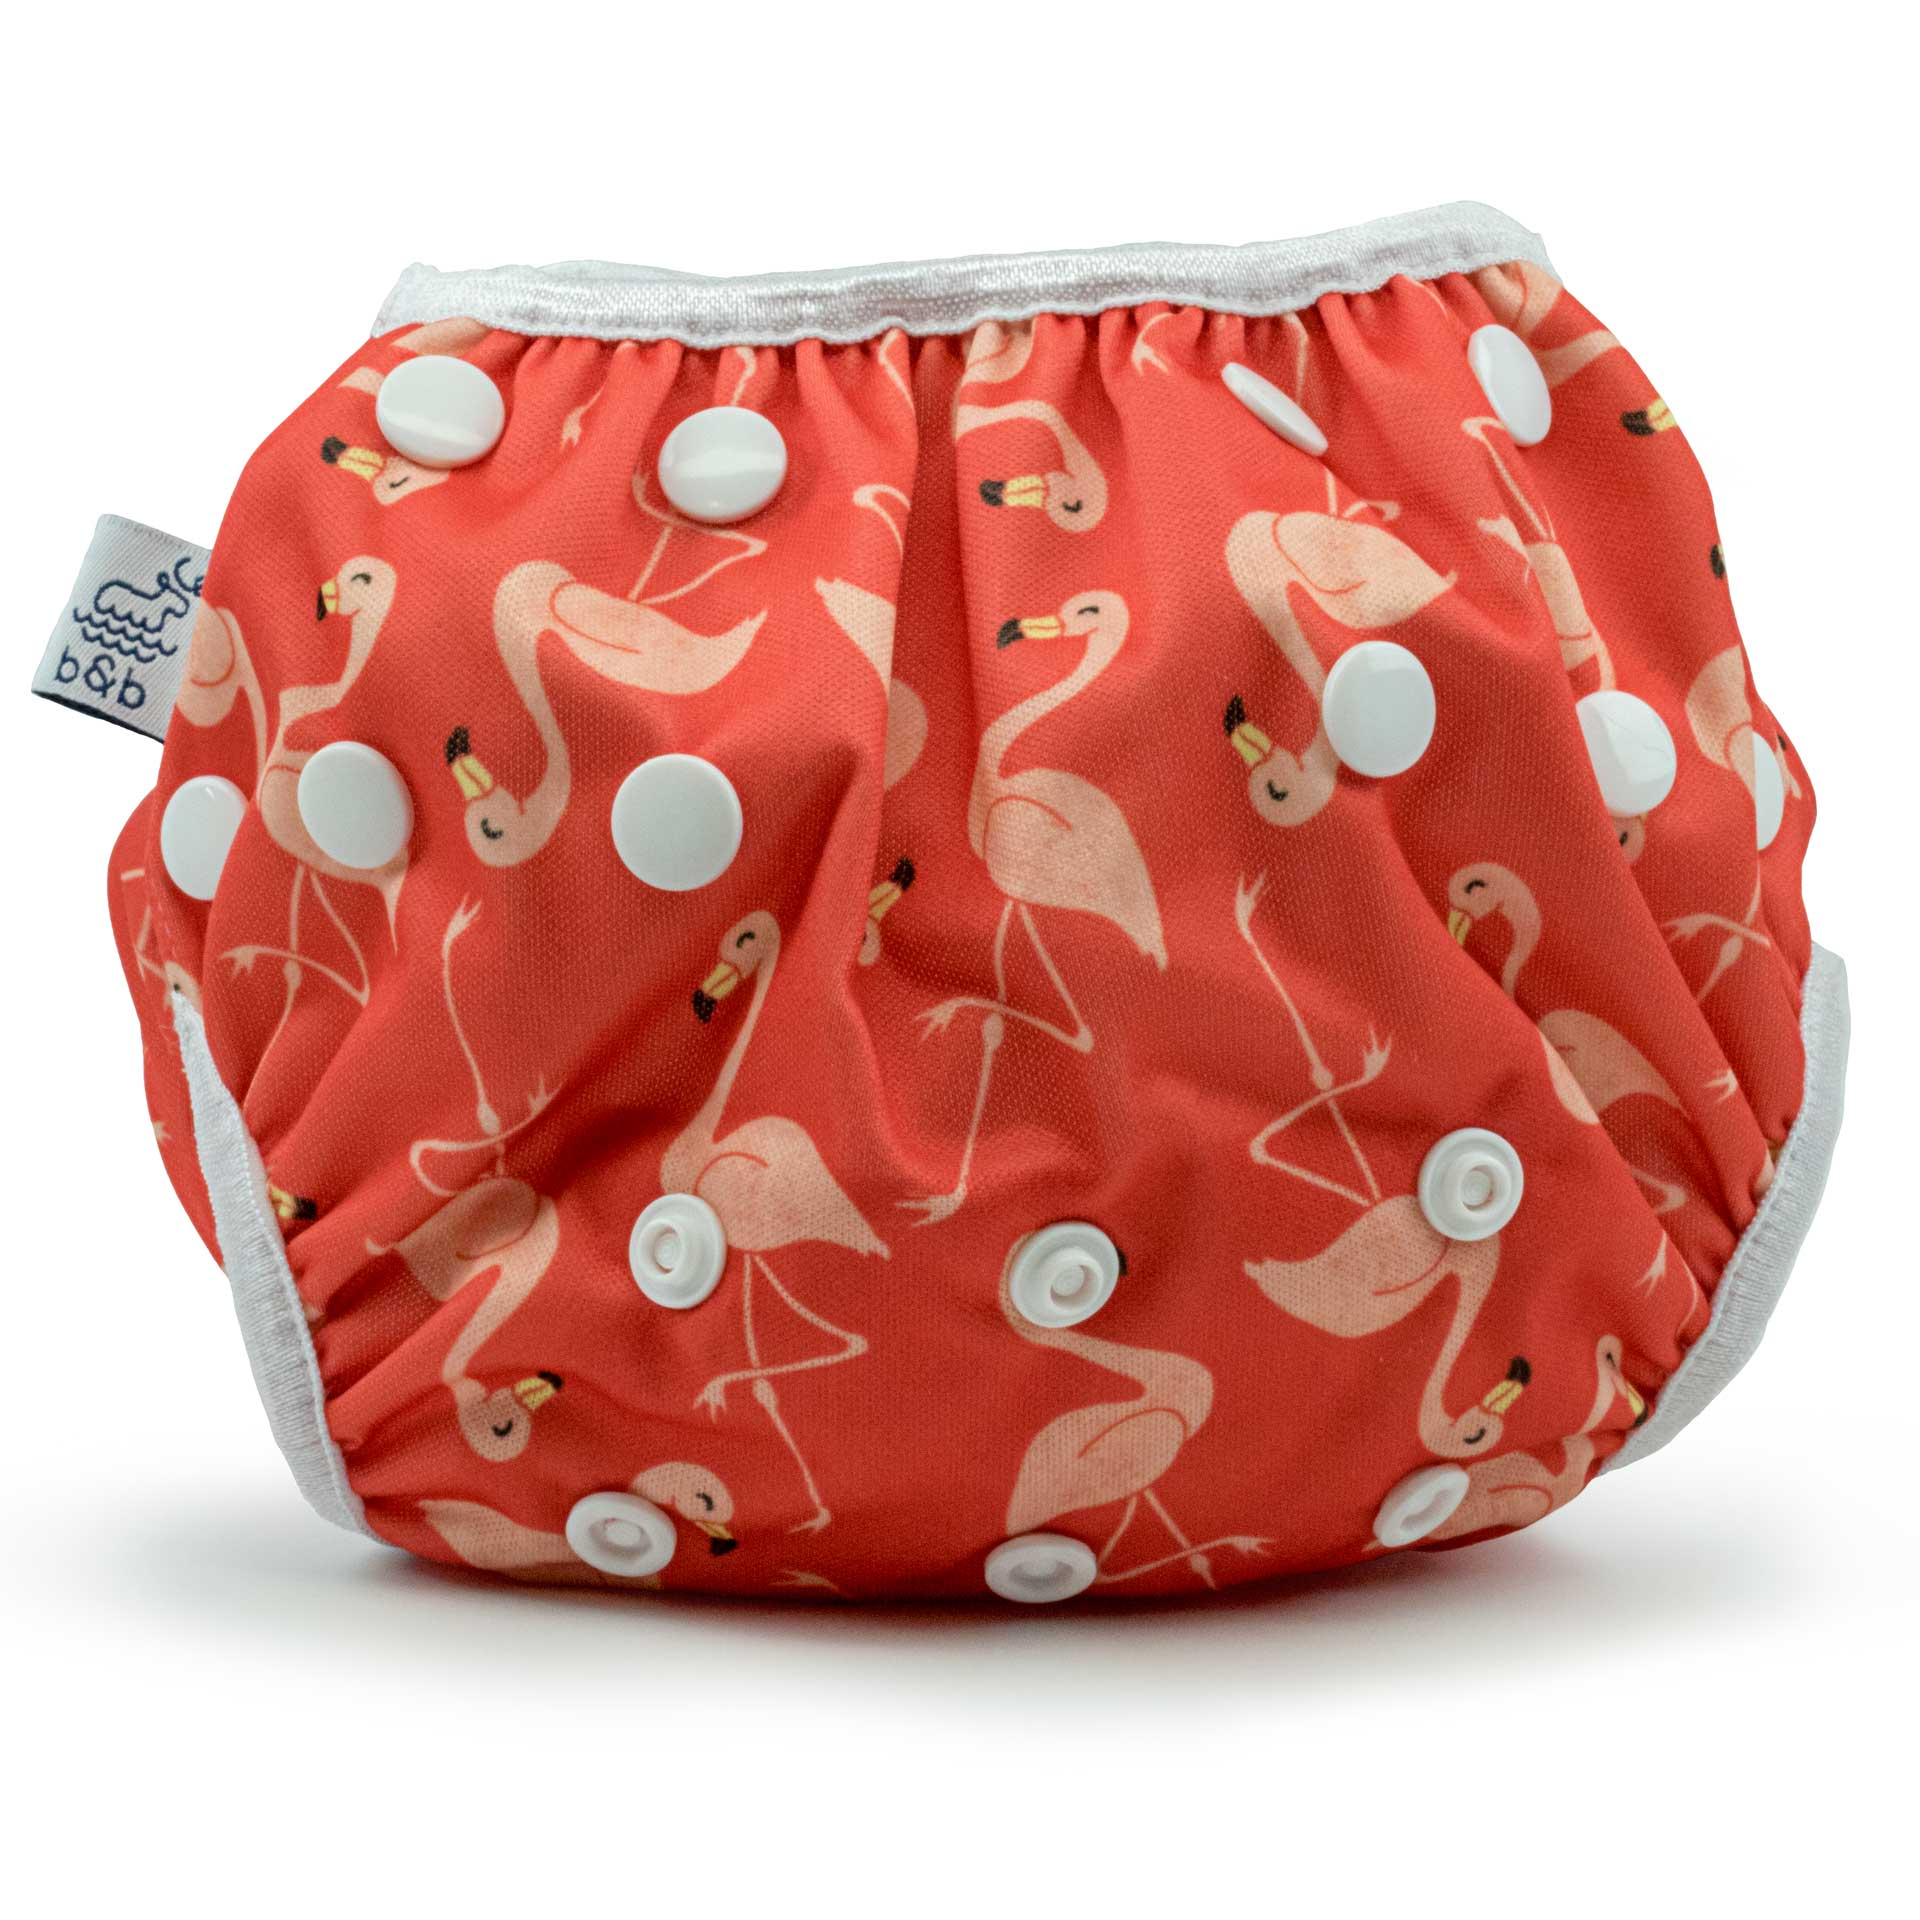 Swim Diapers for Babies